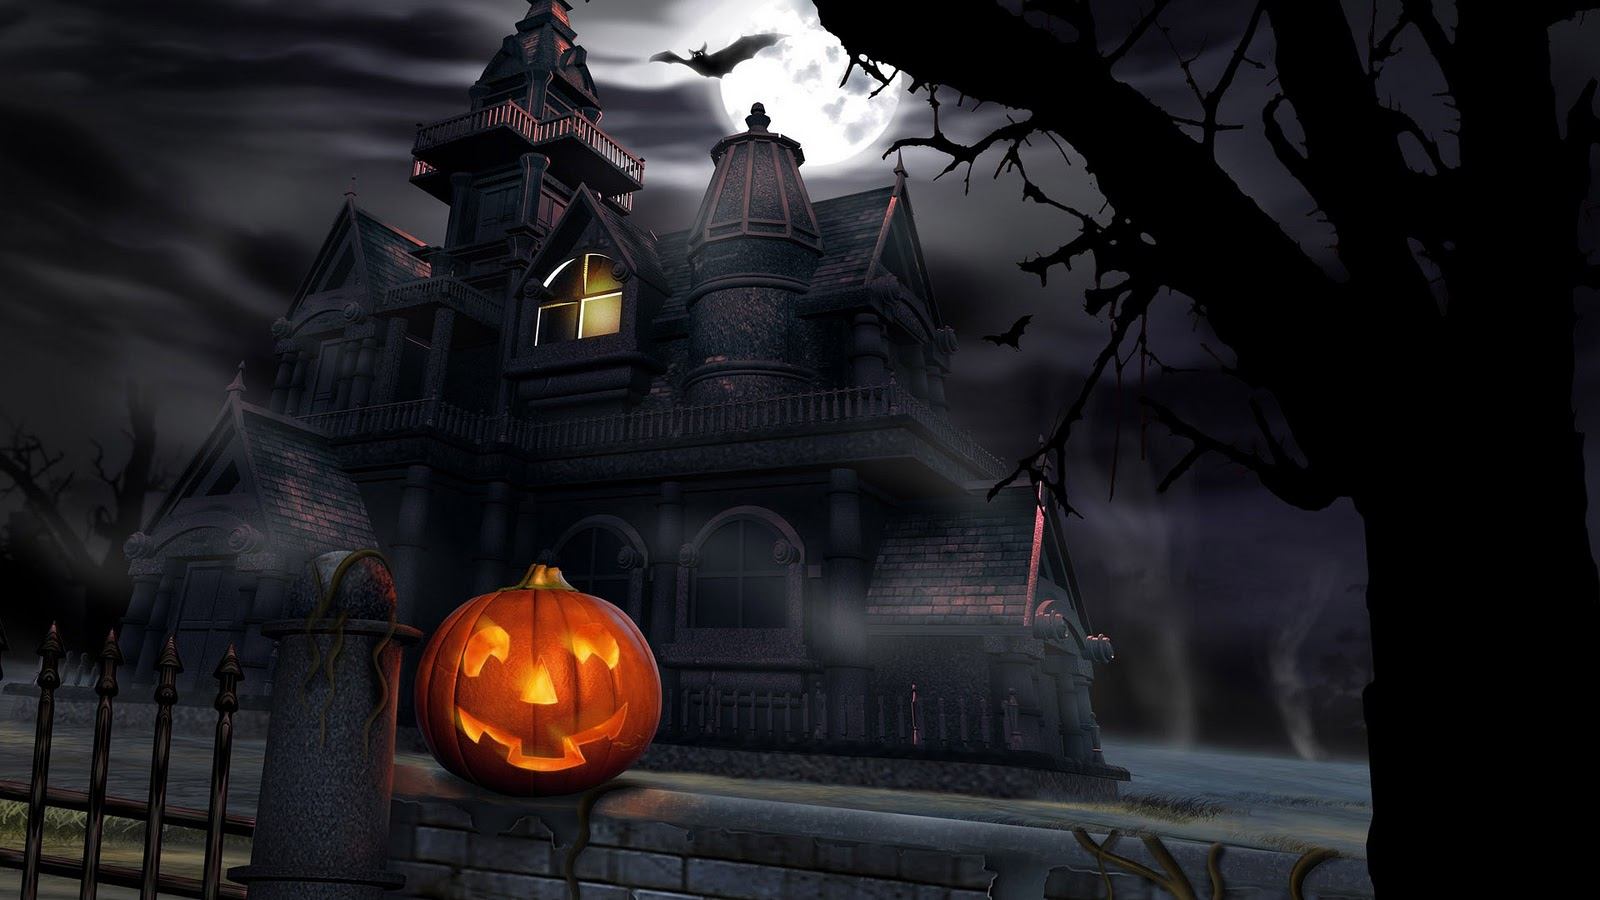 Halloween Desktop Wallpapers Hd 7700 Wallpaper Wallpaper hd 1600x900